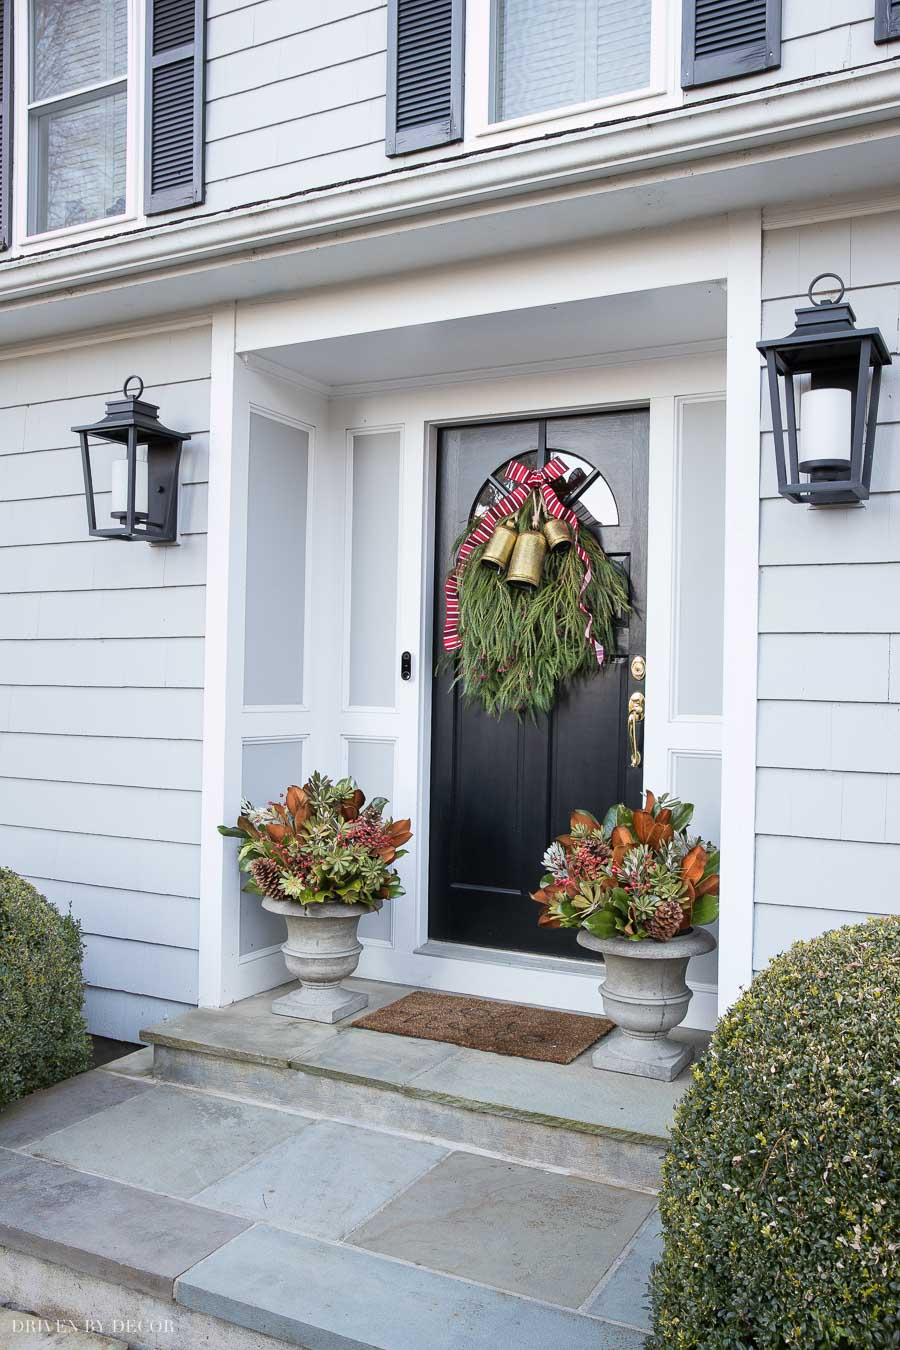 Our Christmas front porch with a DIY door swag and planters - how-to included in post!